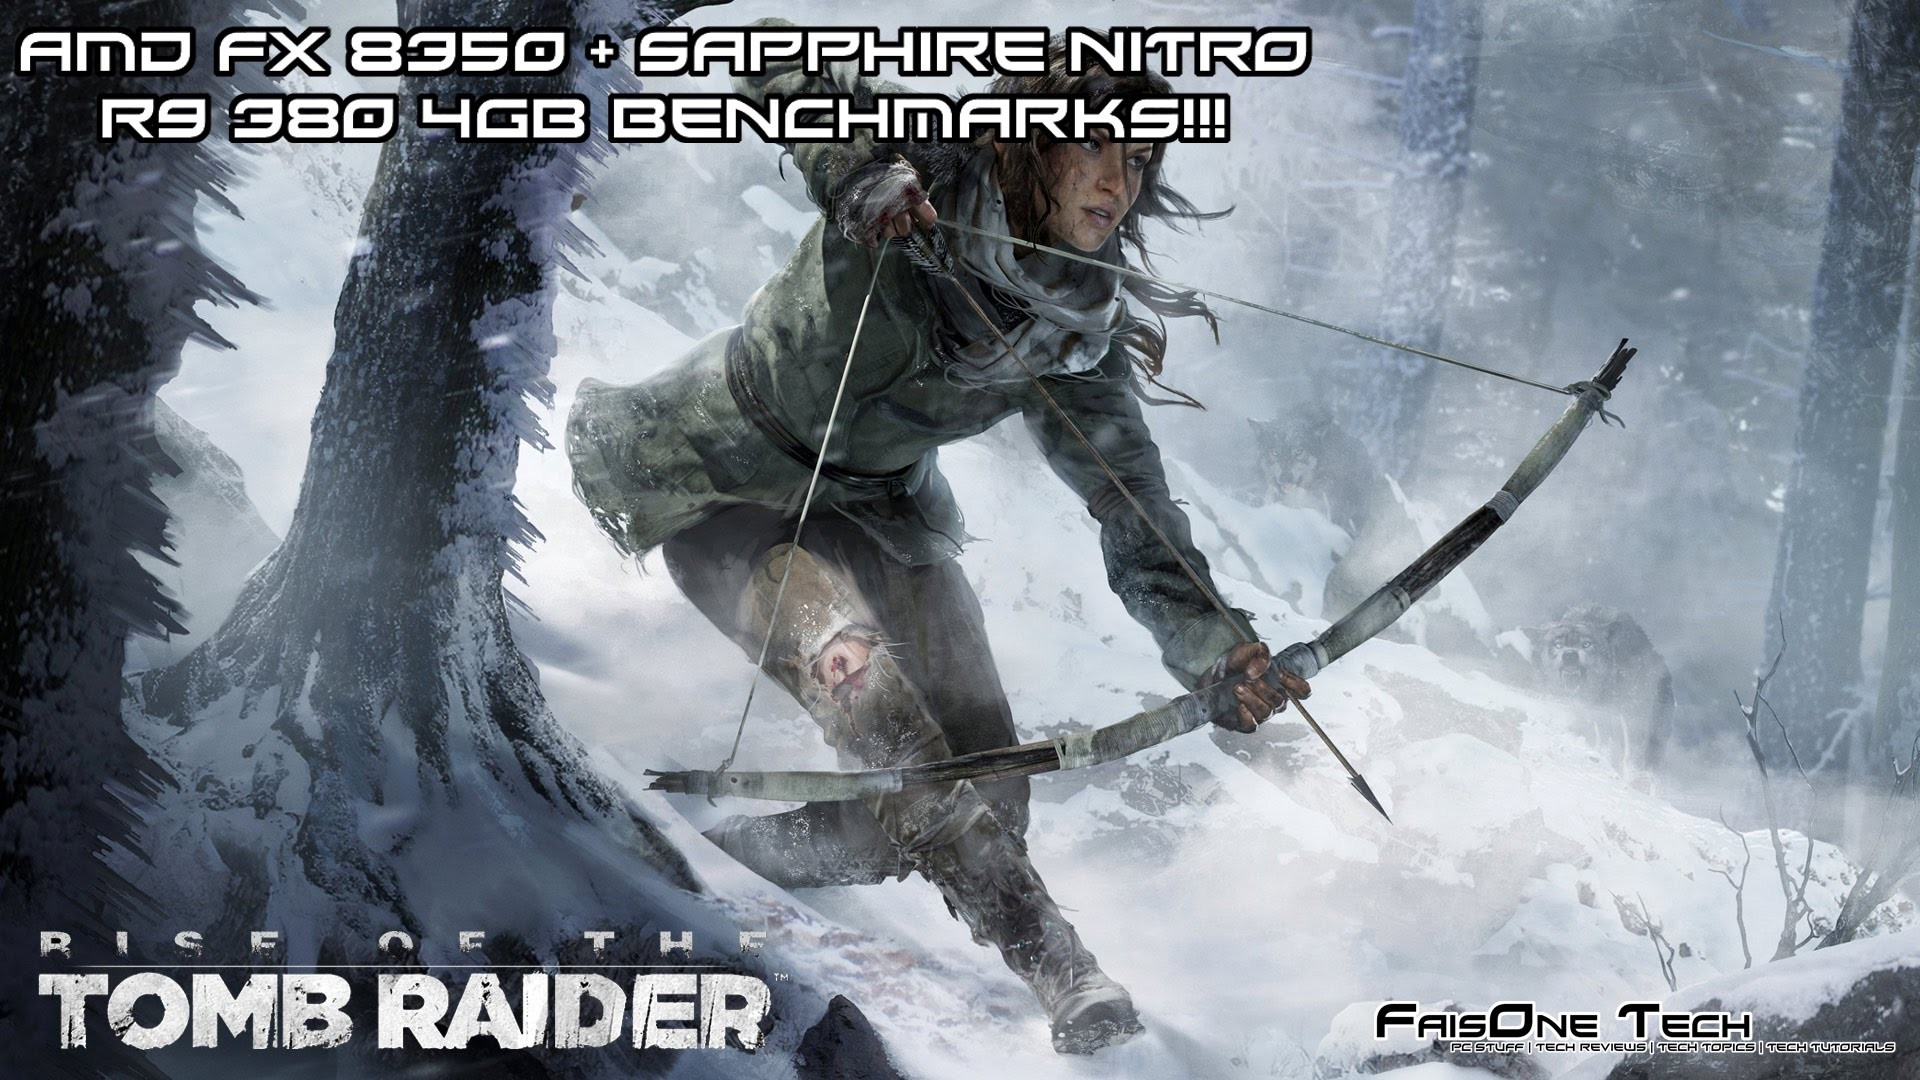 Rise of the Tomb Raider PC Performance – AMD FX 8350 + R9 380 – YouTube